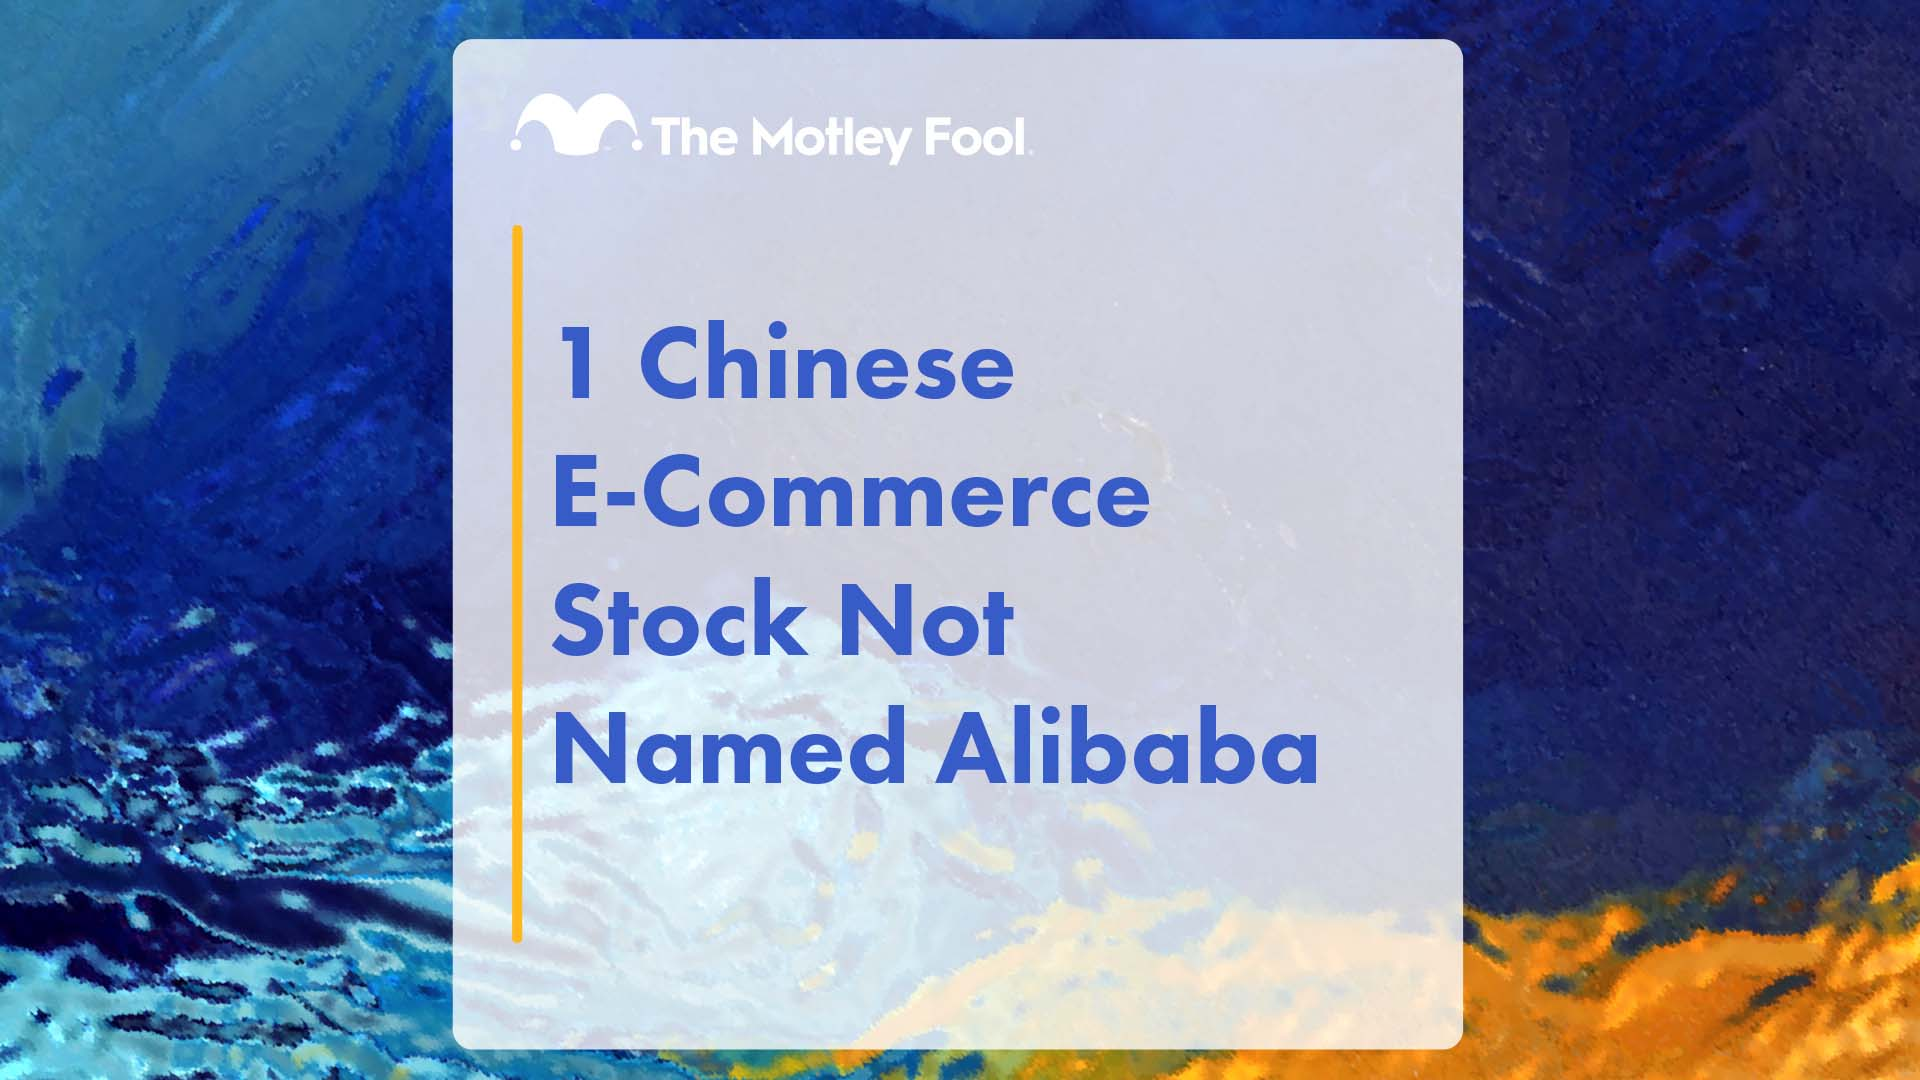 1 Chinese E-Commerce Stock Not Named Alibaba